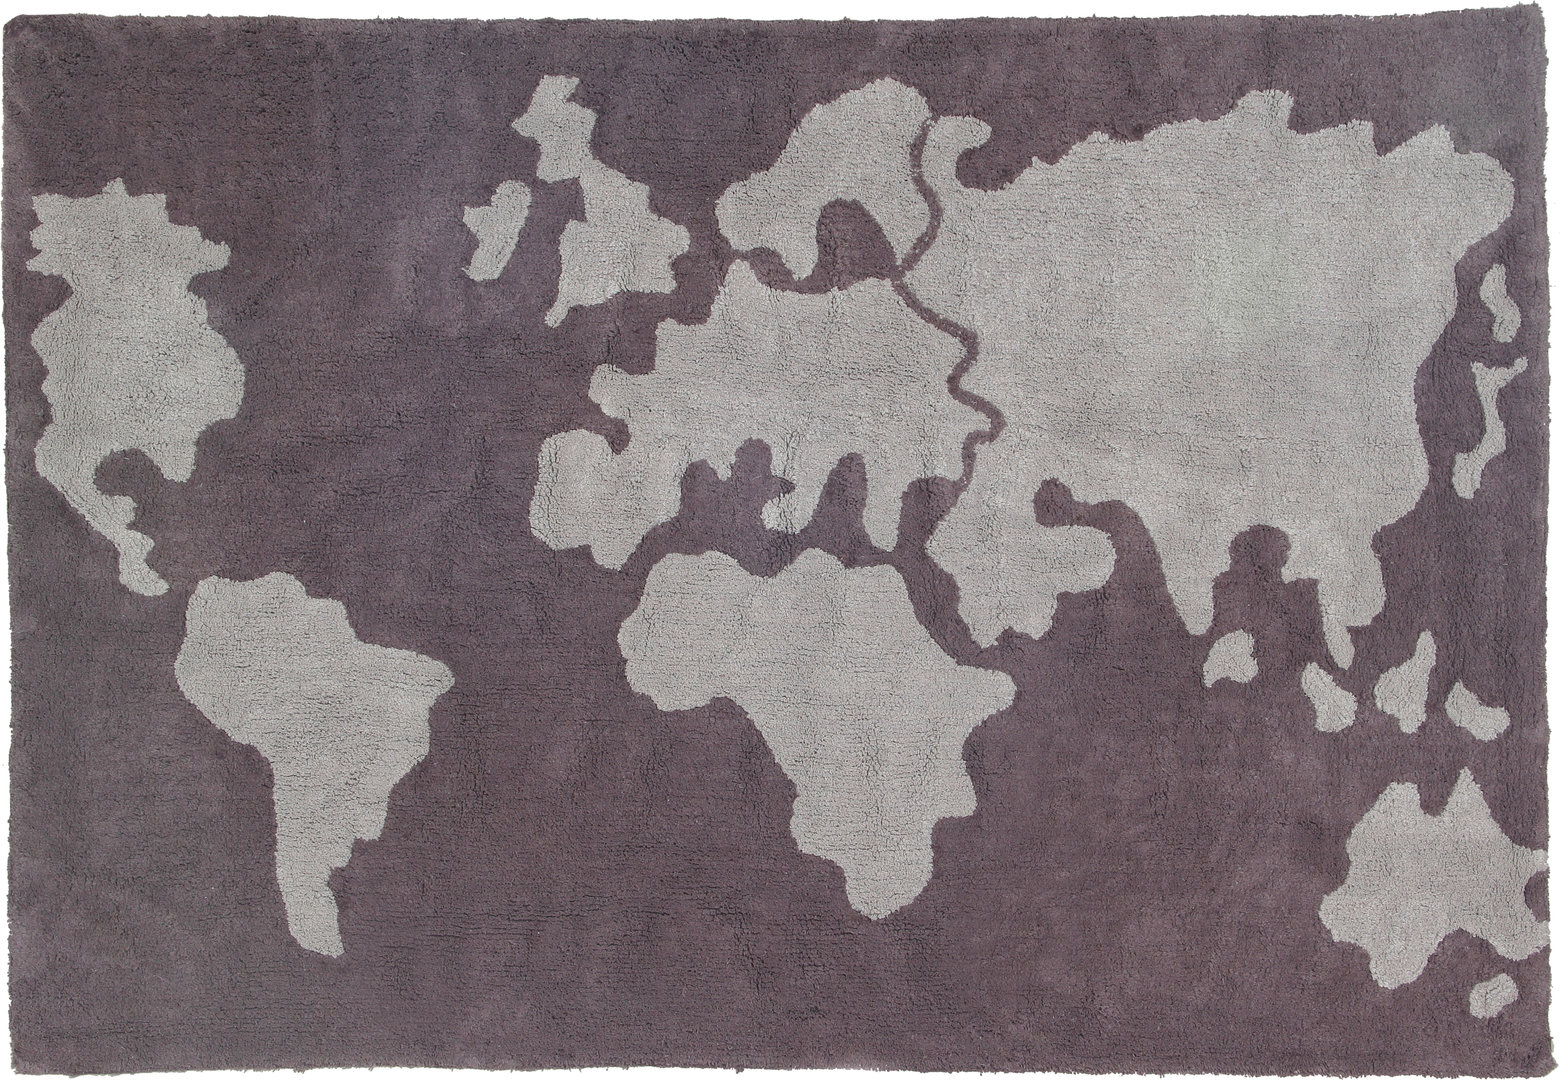 Alfombra lorena canals world map baby kids deco for Alfombras lorena canals